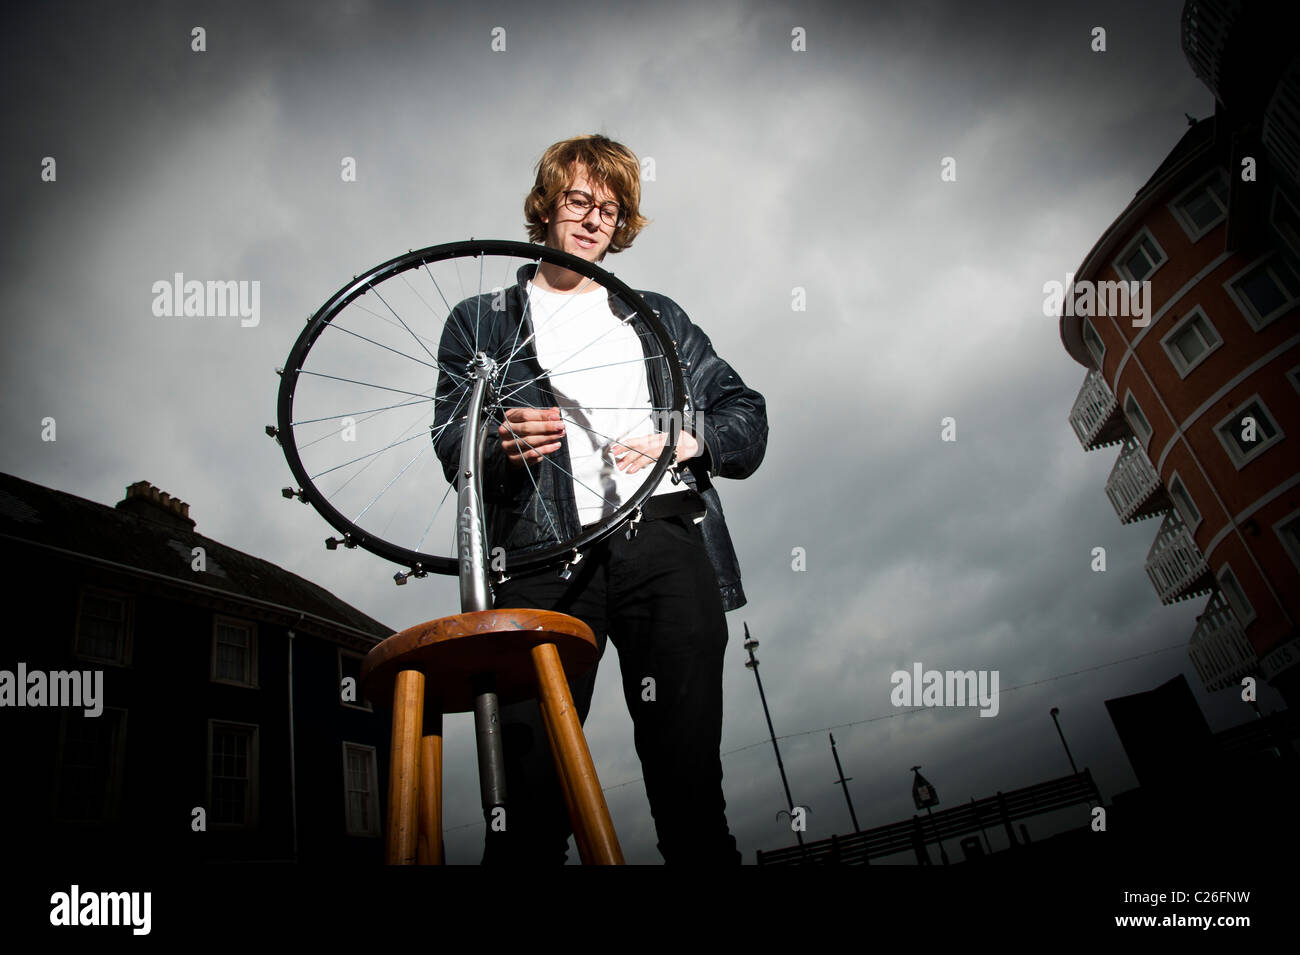 Aberystywyth university art student JOE SCOTT with his kinetic sculpture based on a bicycle wheel, - Stock Image